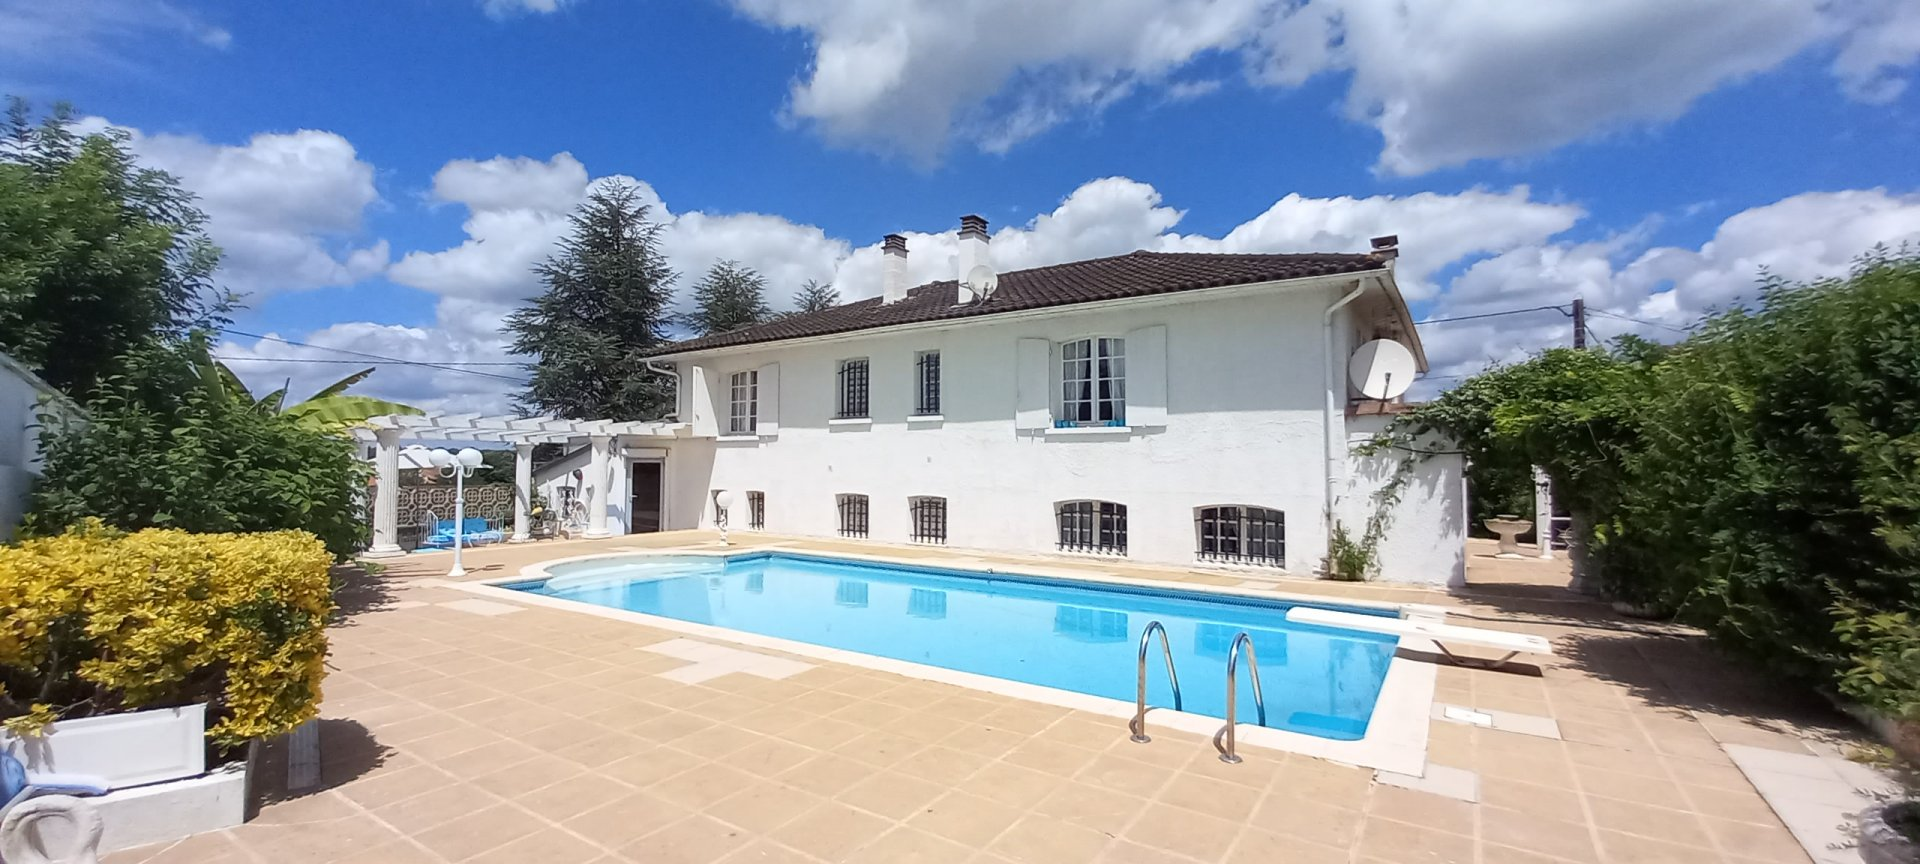 Beautiful house with swimming pool near to amenities